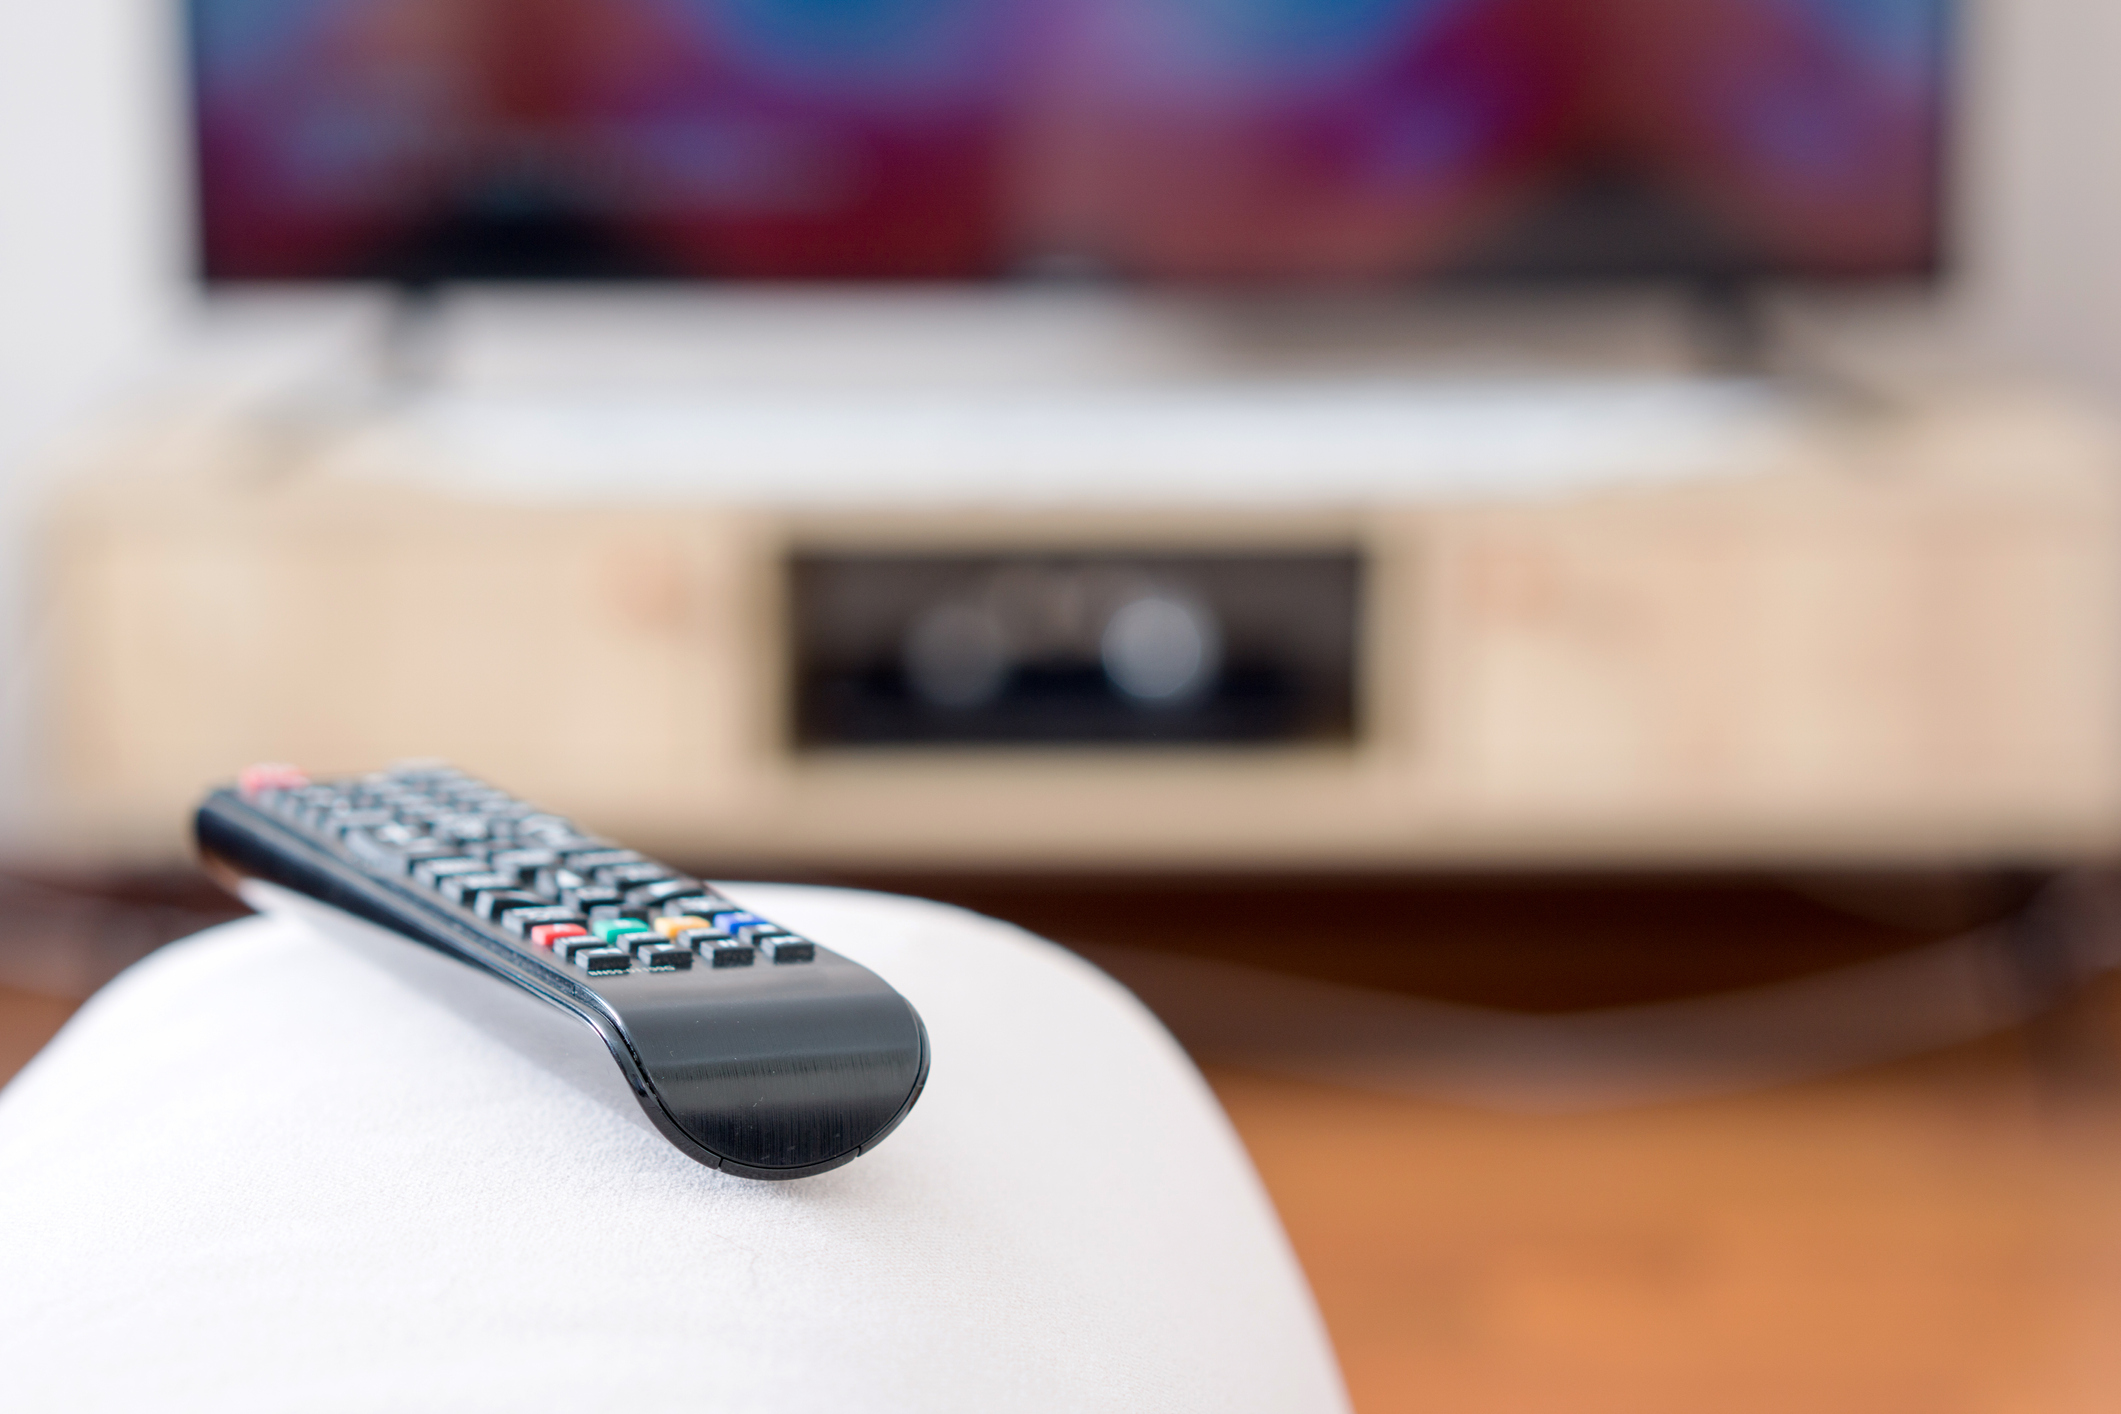 One TV remote control on the armrest of sofa